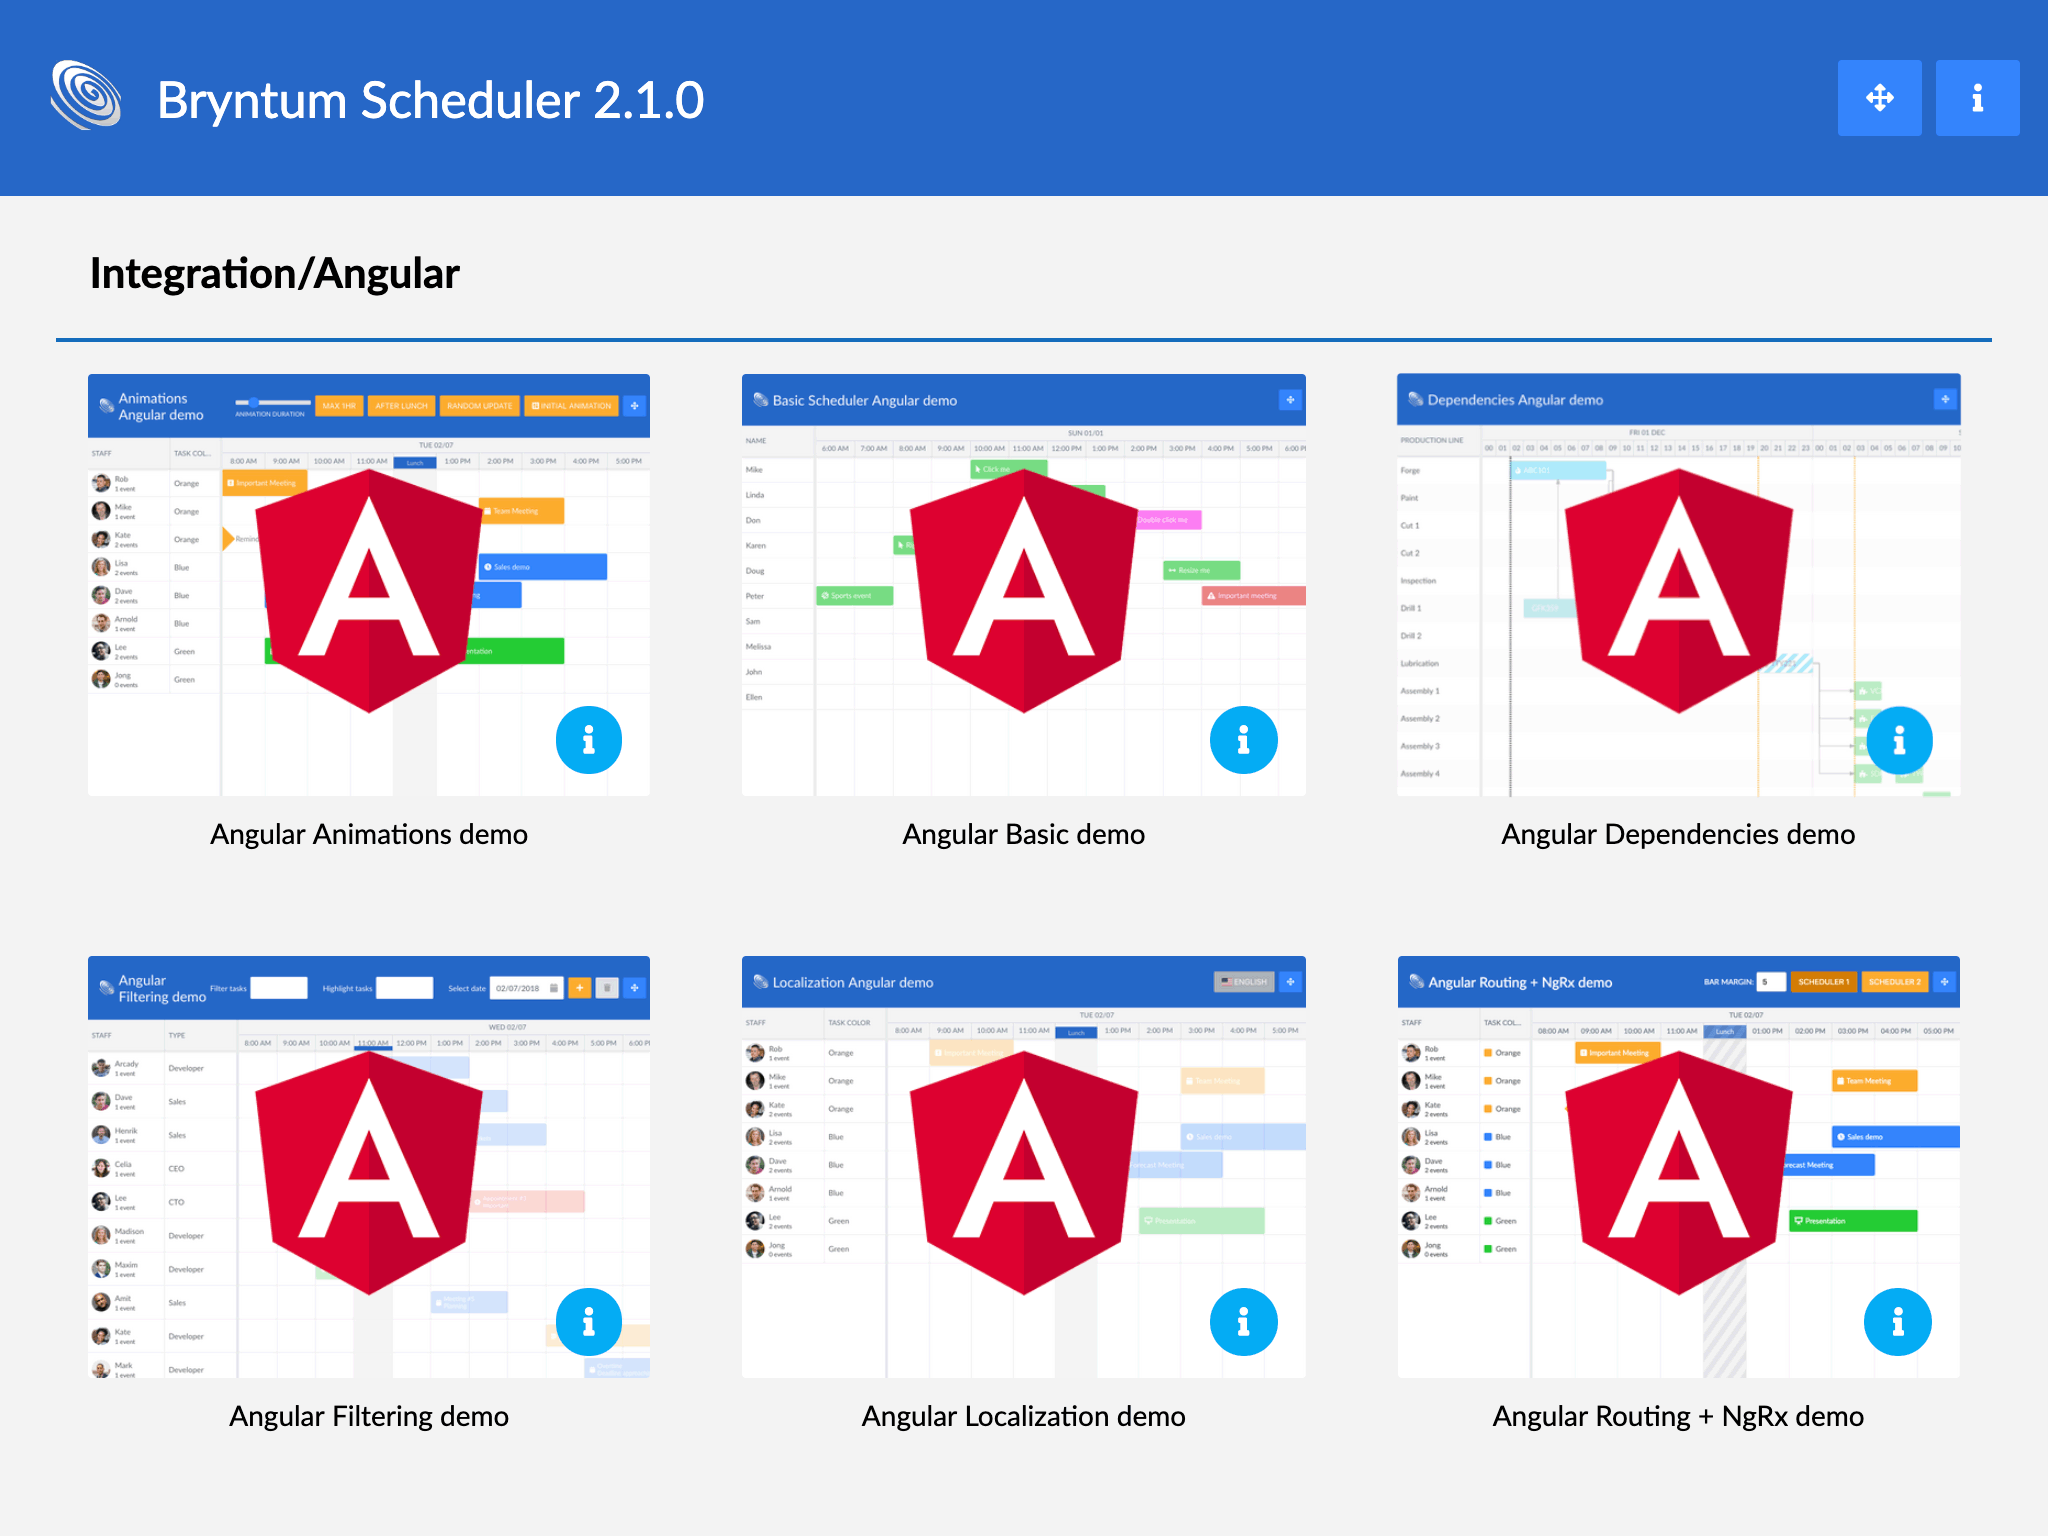 New Angular demos